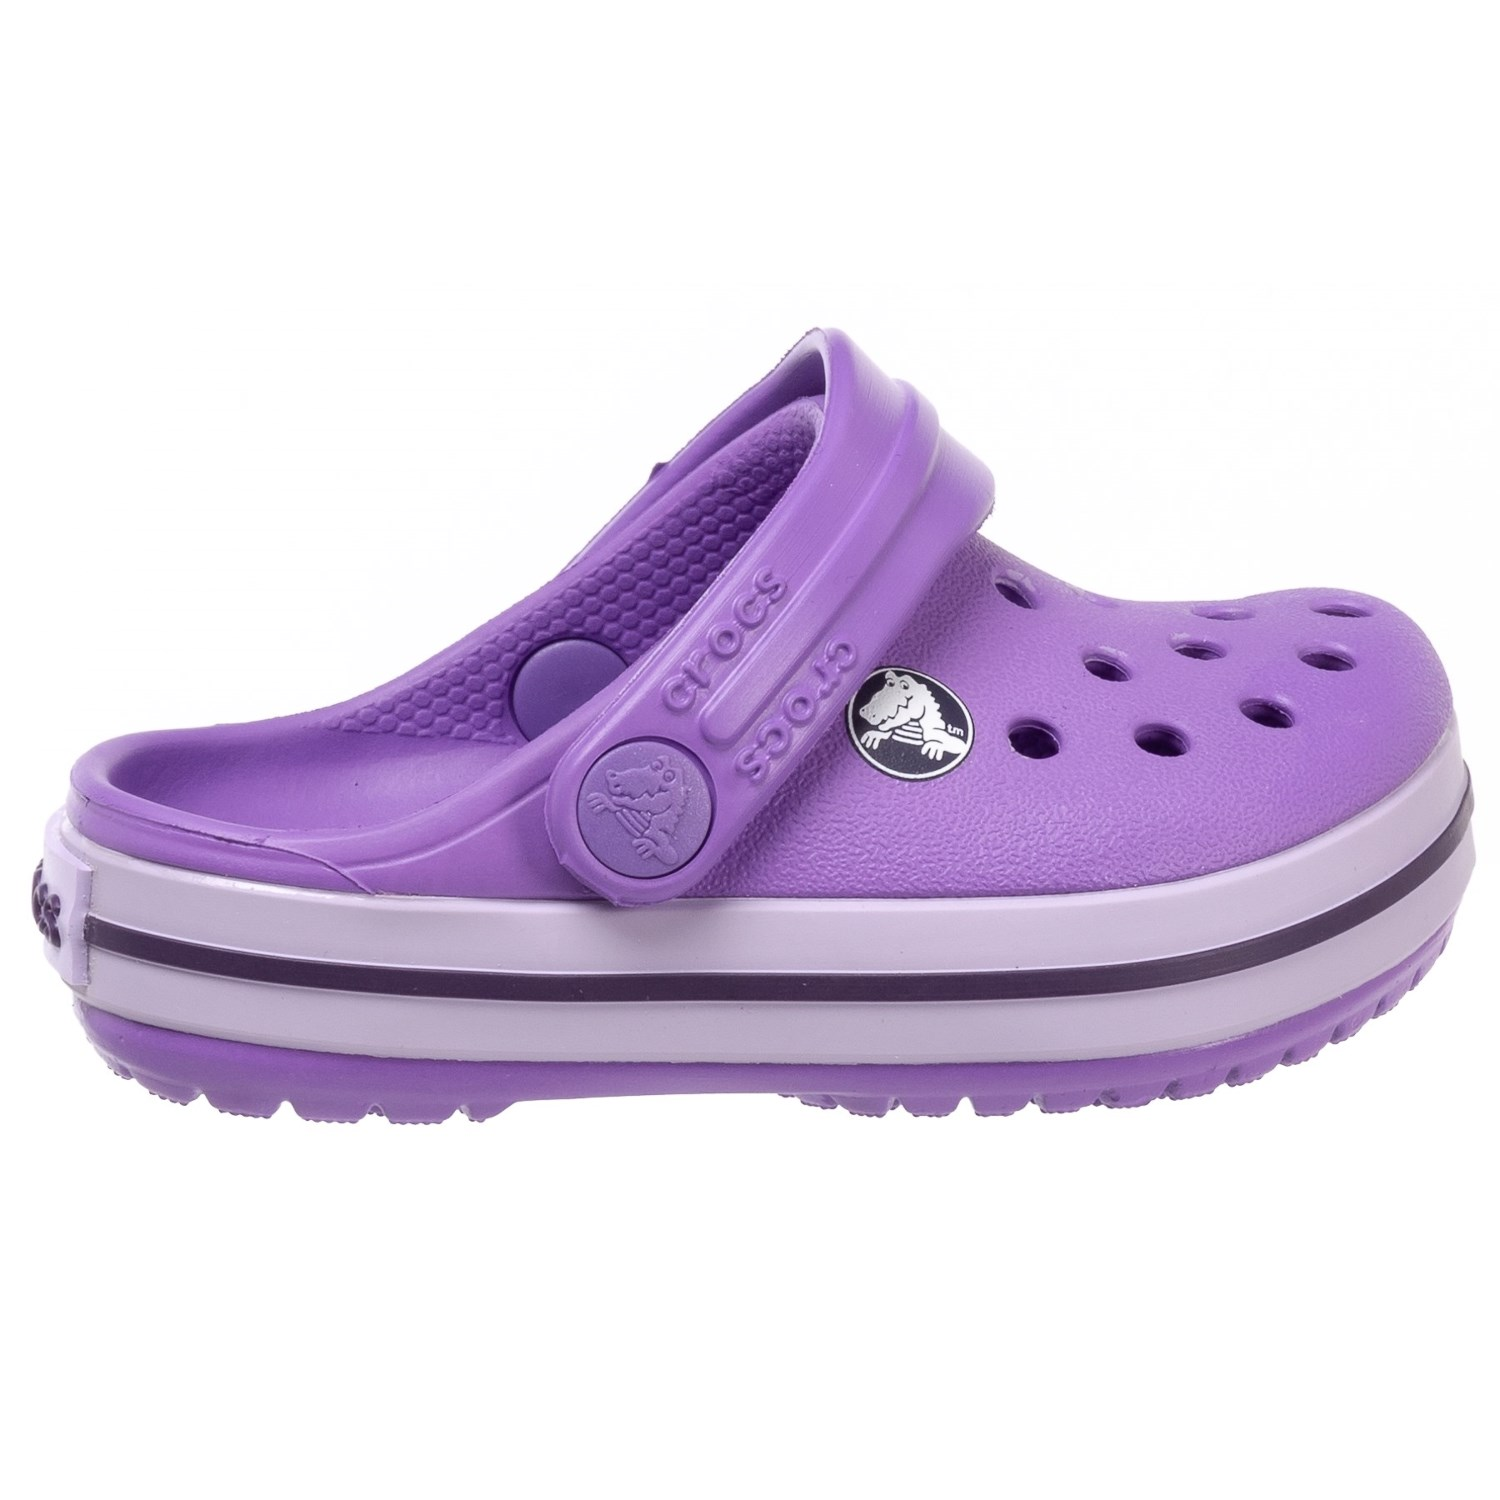 70f55d39f3cf69 Crocs Crocband Clog (For Girls) - Save 37%